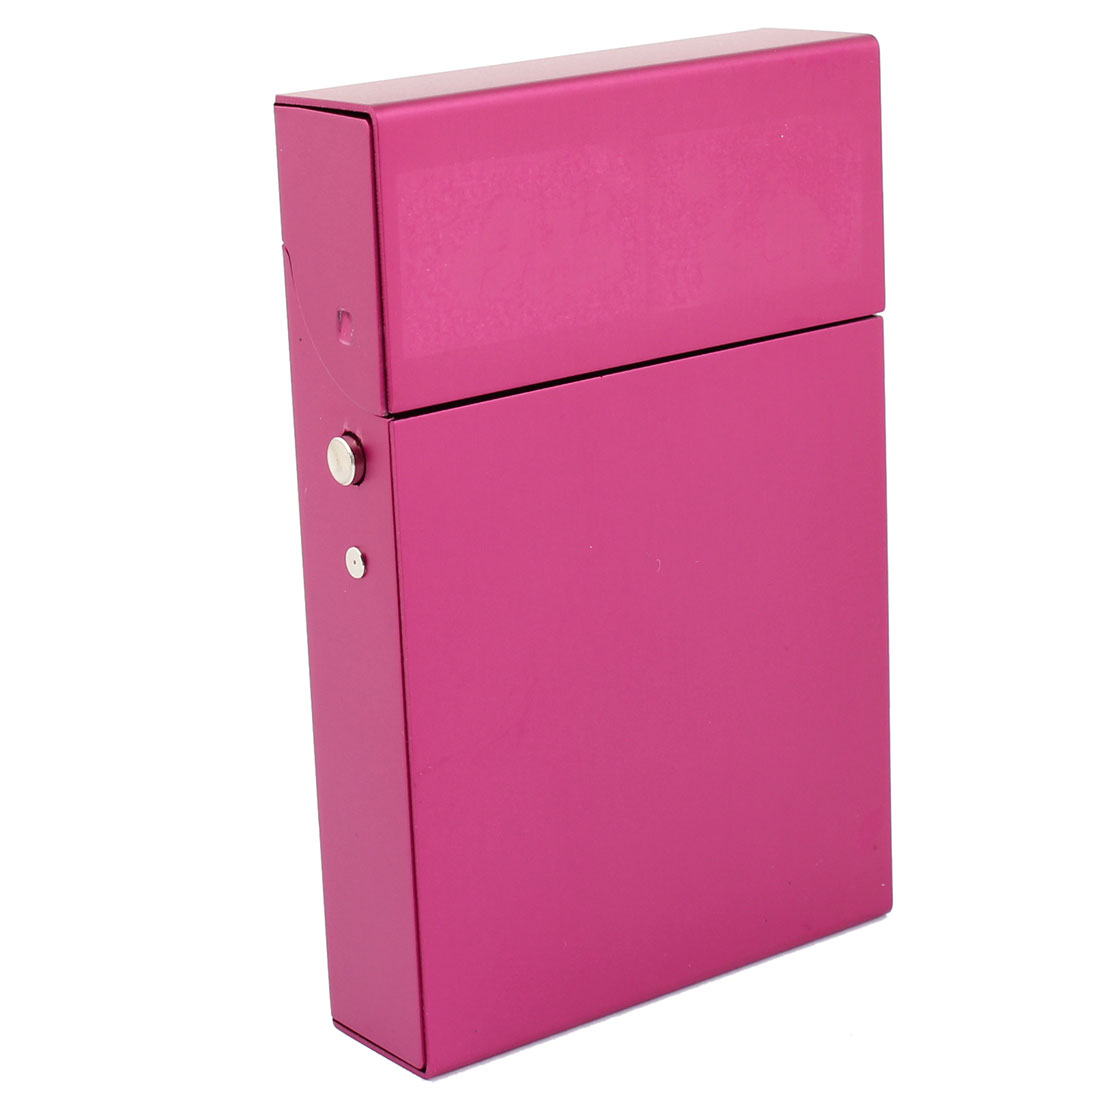 9.2cm Long Fuchsia Aluminum Press Open Buckle Cigarette Case Holder